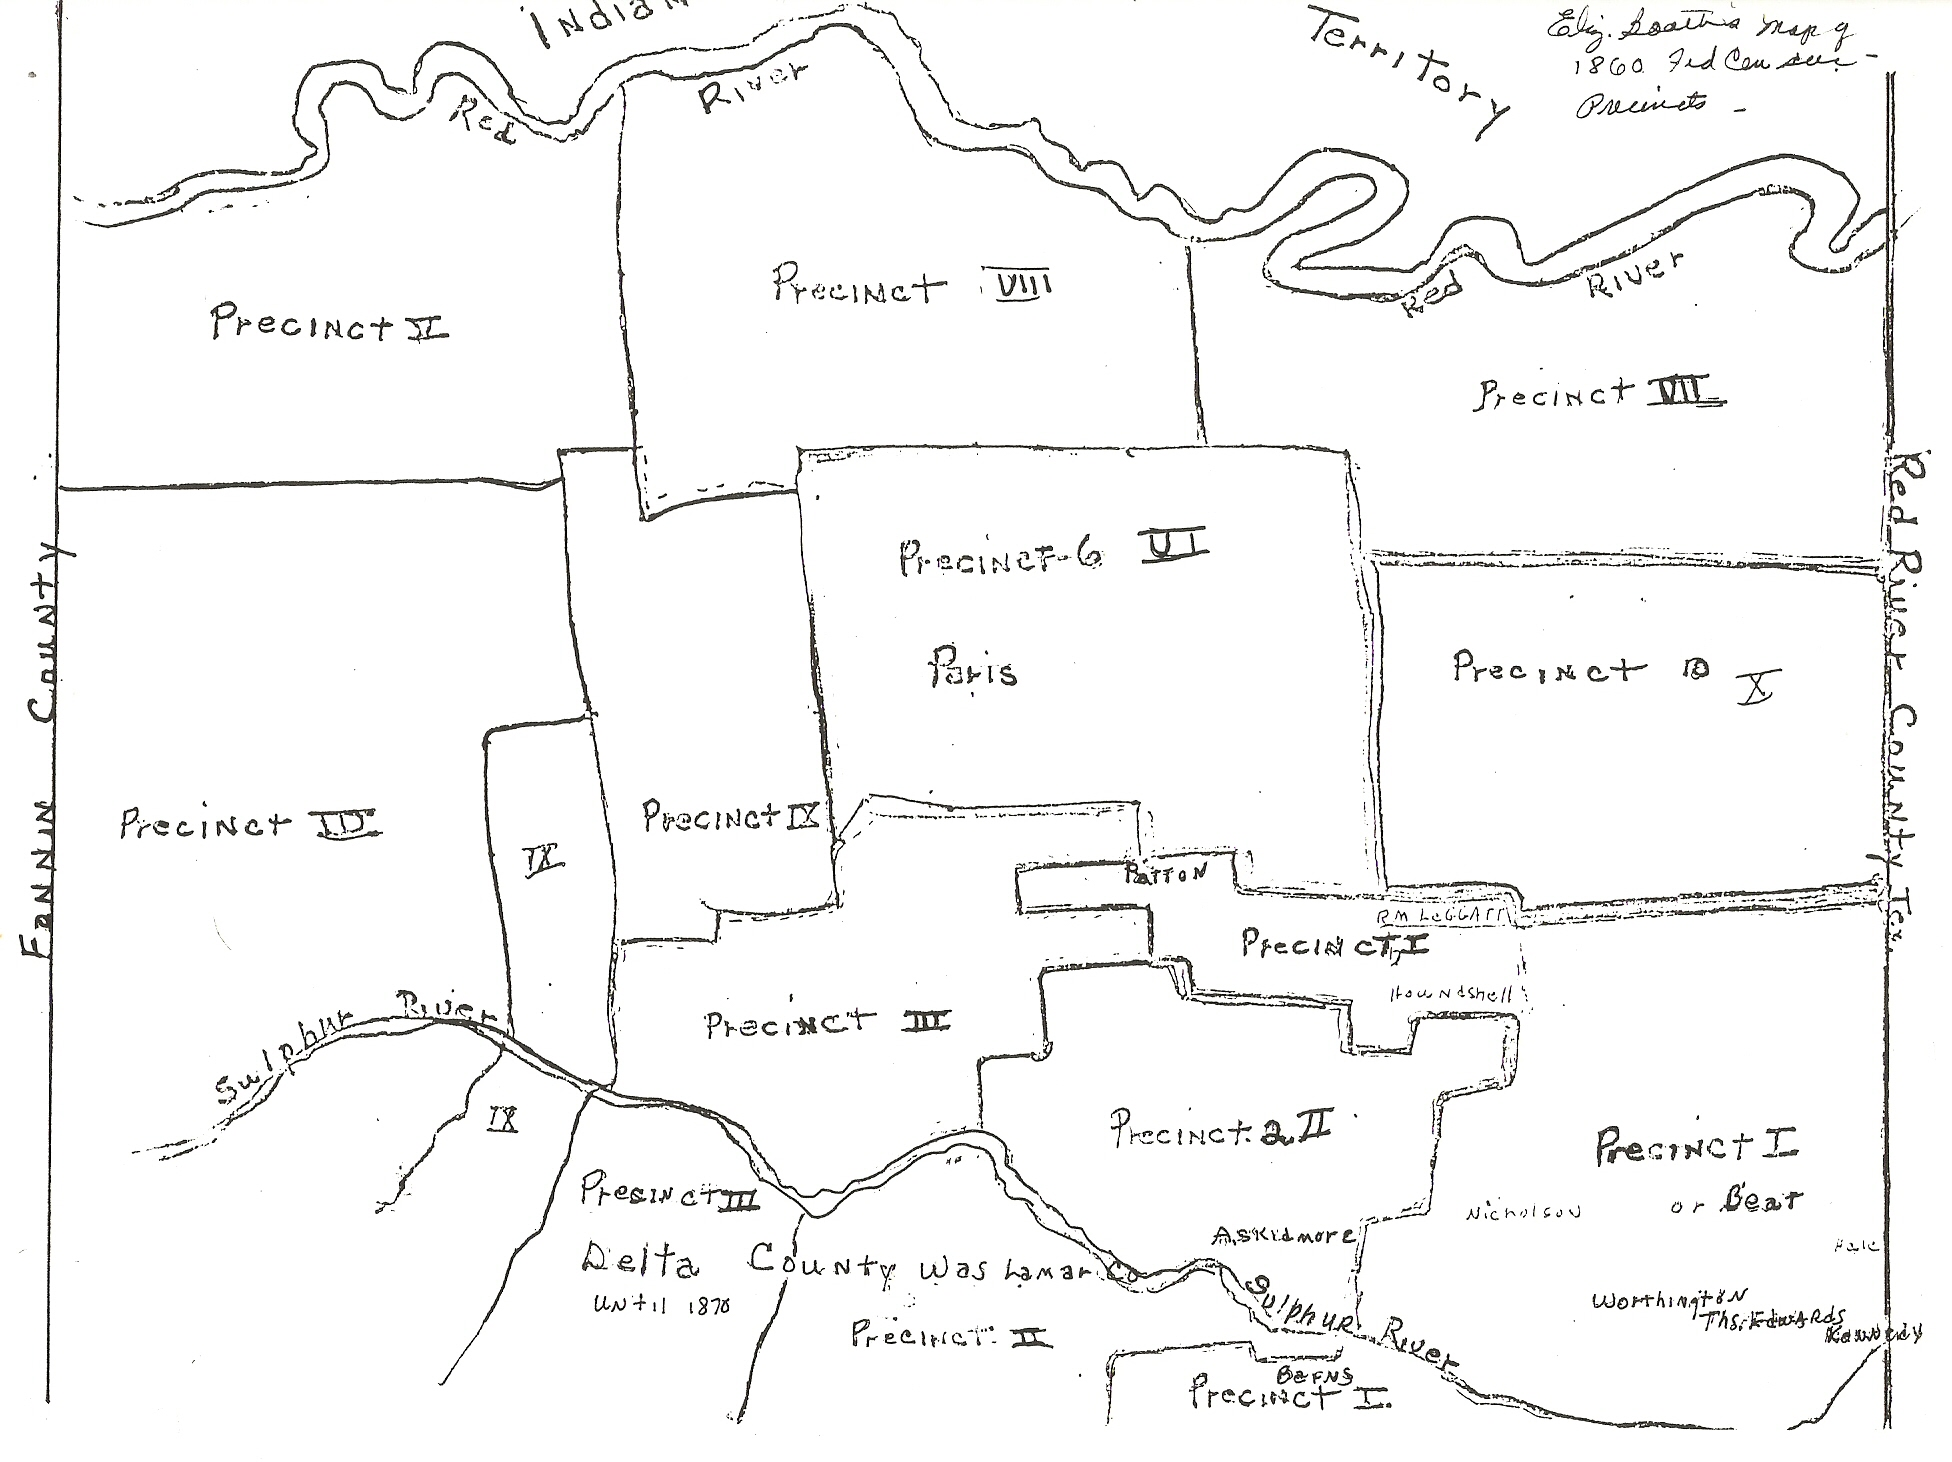 Map of Lamar County showing Precincts in 1860